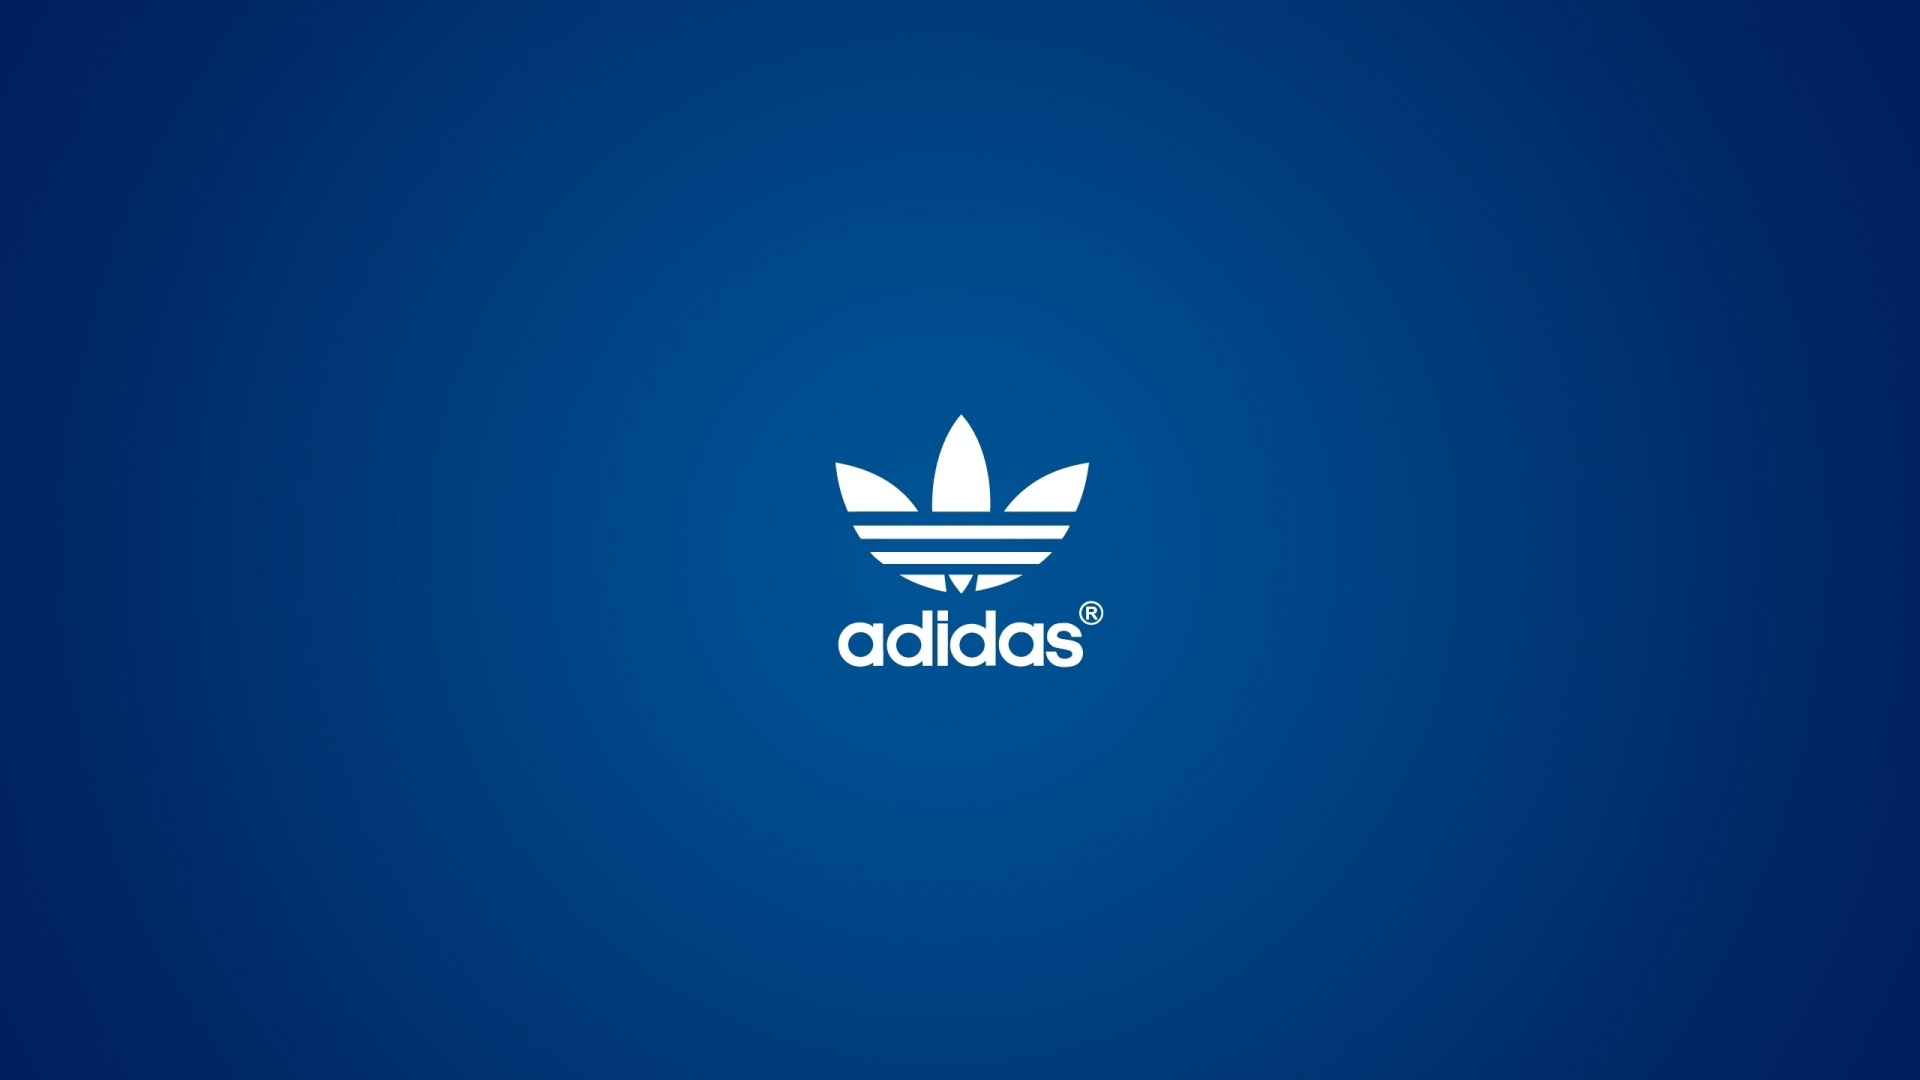 wallpaper logo adidas wallpapers 1920x1080 1920x1080